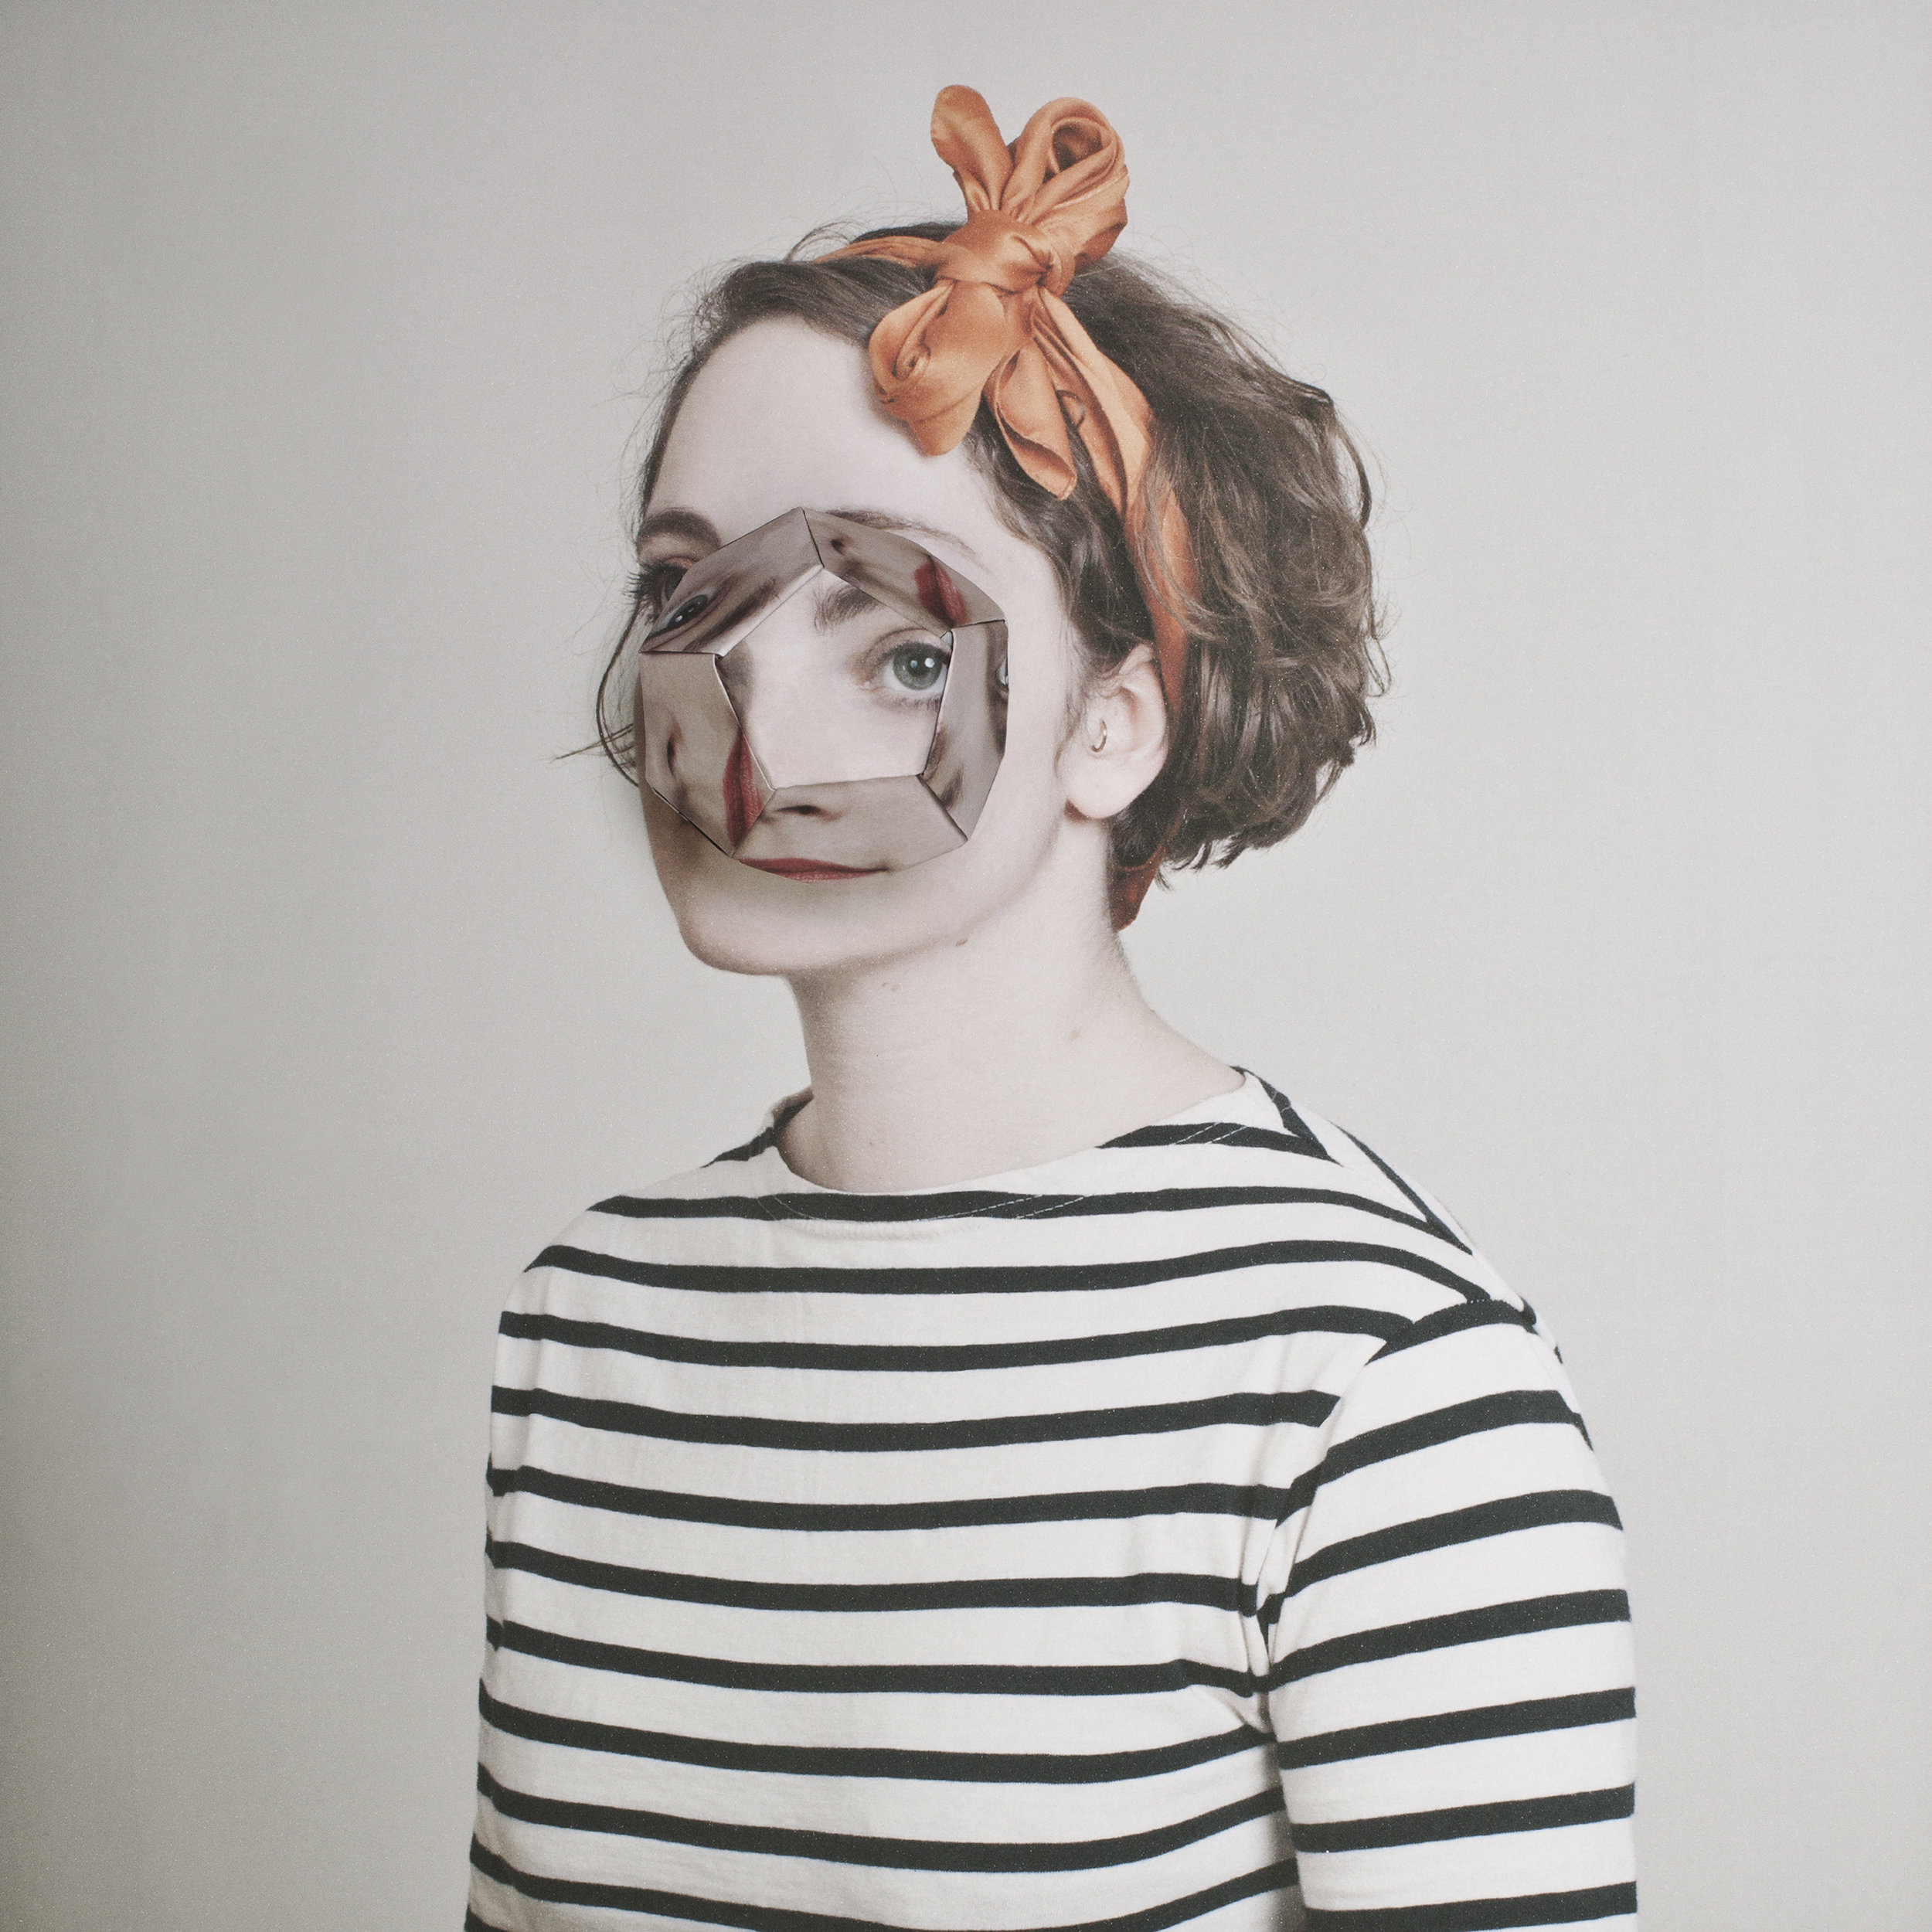 Alma Haser,  Patient No. 1 (Lottie) , 2013  Digital pigment print, 60 x 60 cm (approx. 24 x 24 in), edition of 10   Inquire